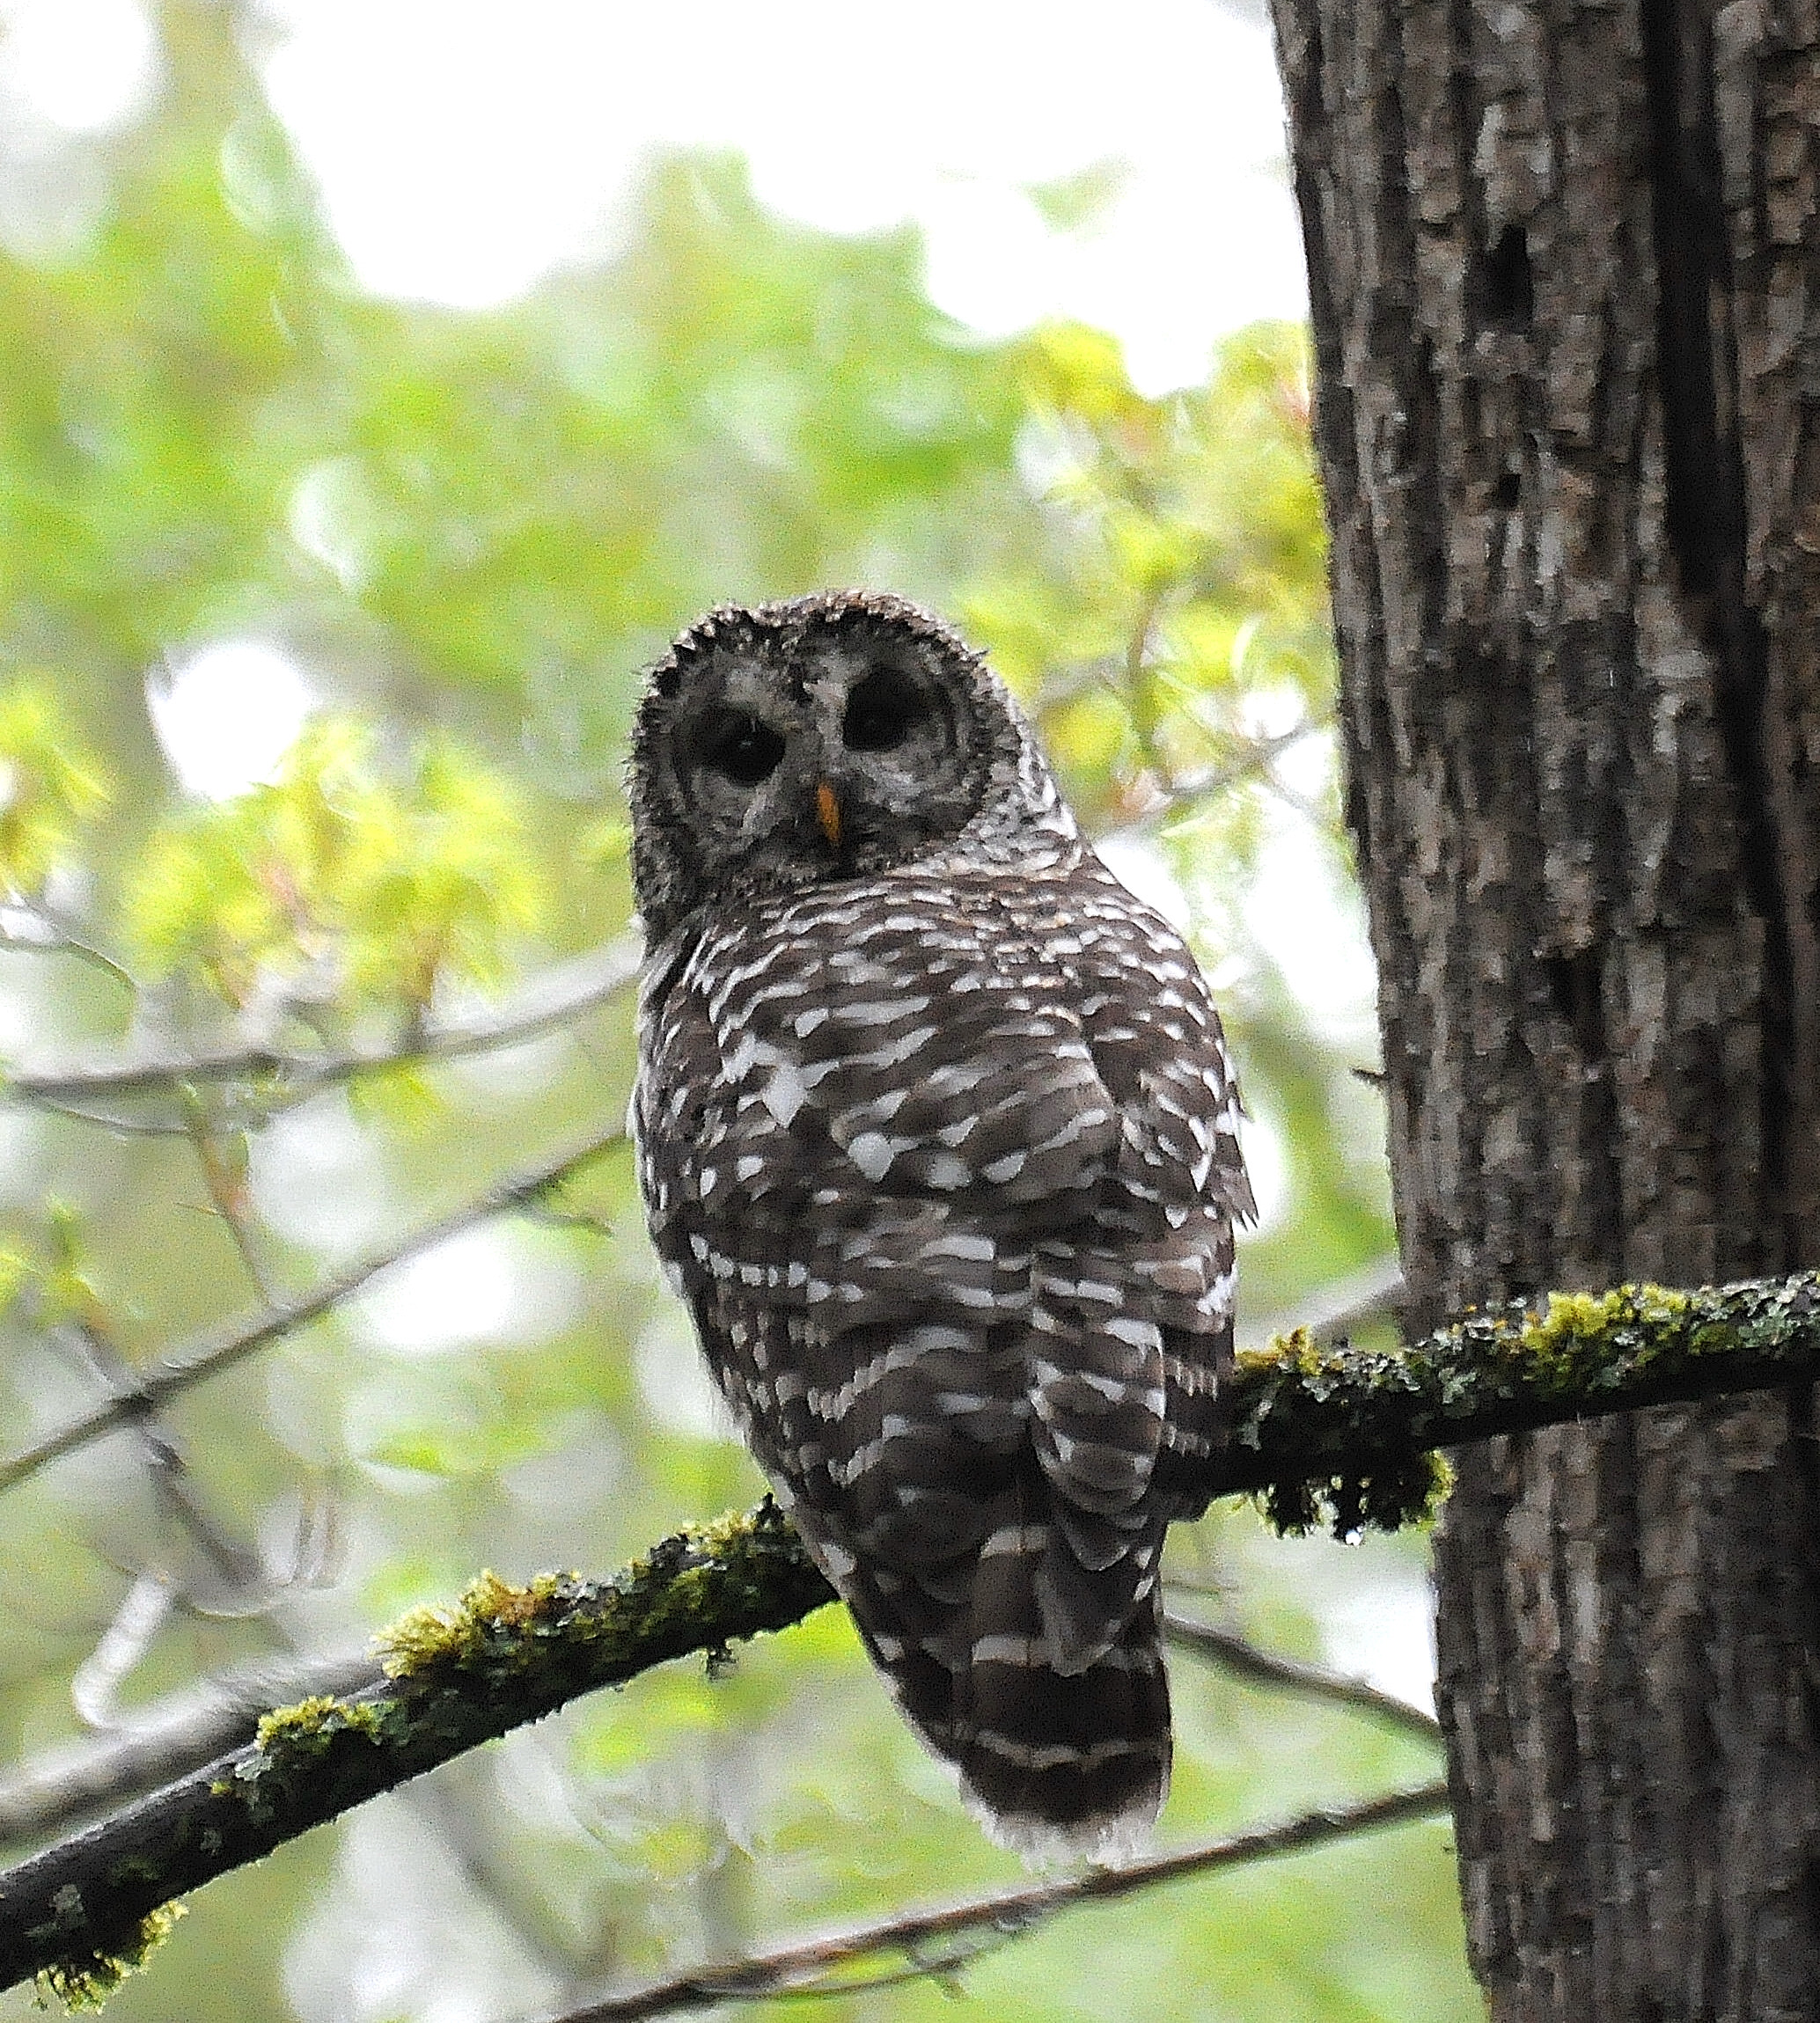 Barred owl photo: Joe Meche